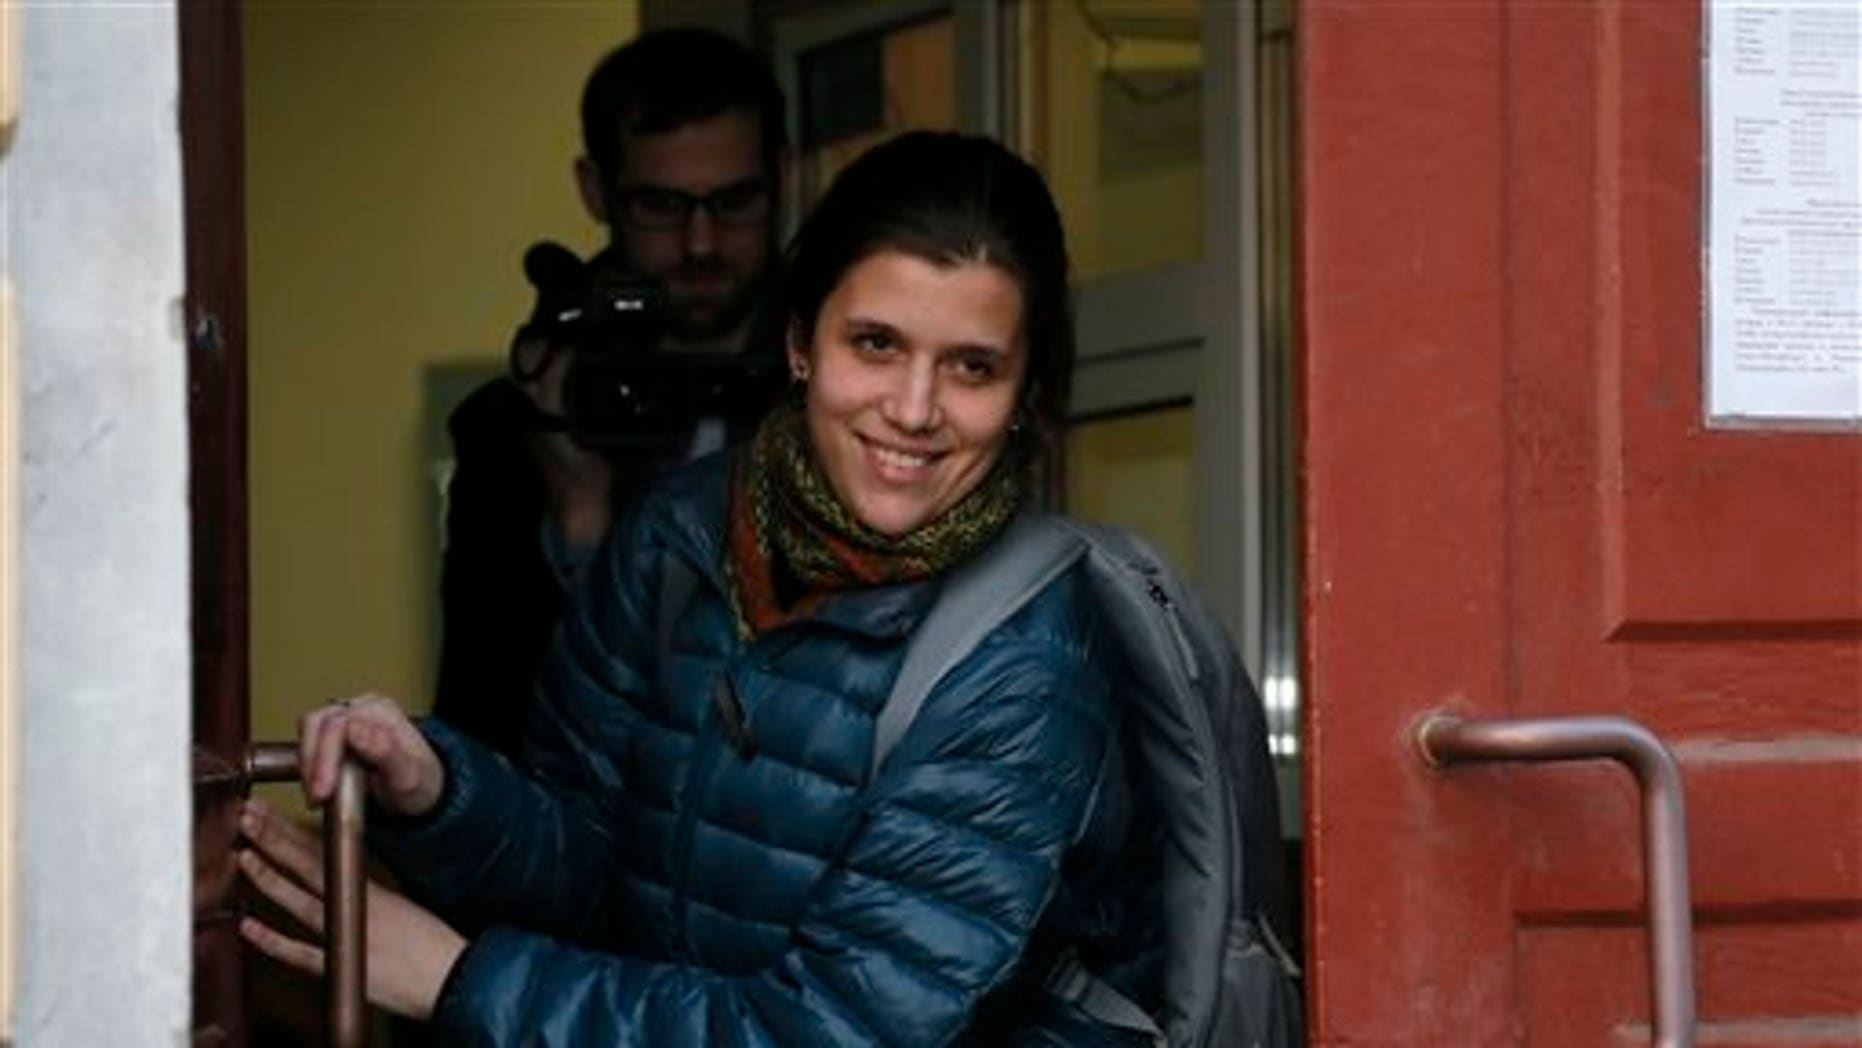 Camila Speziale exits the Federal Migration Service in St. Petersburg, Russia, on Dec. 25, 2013.